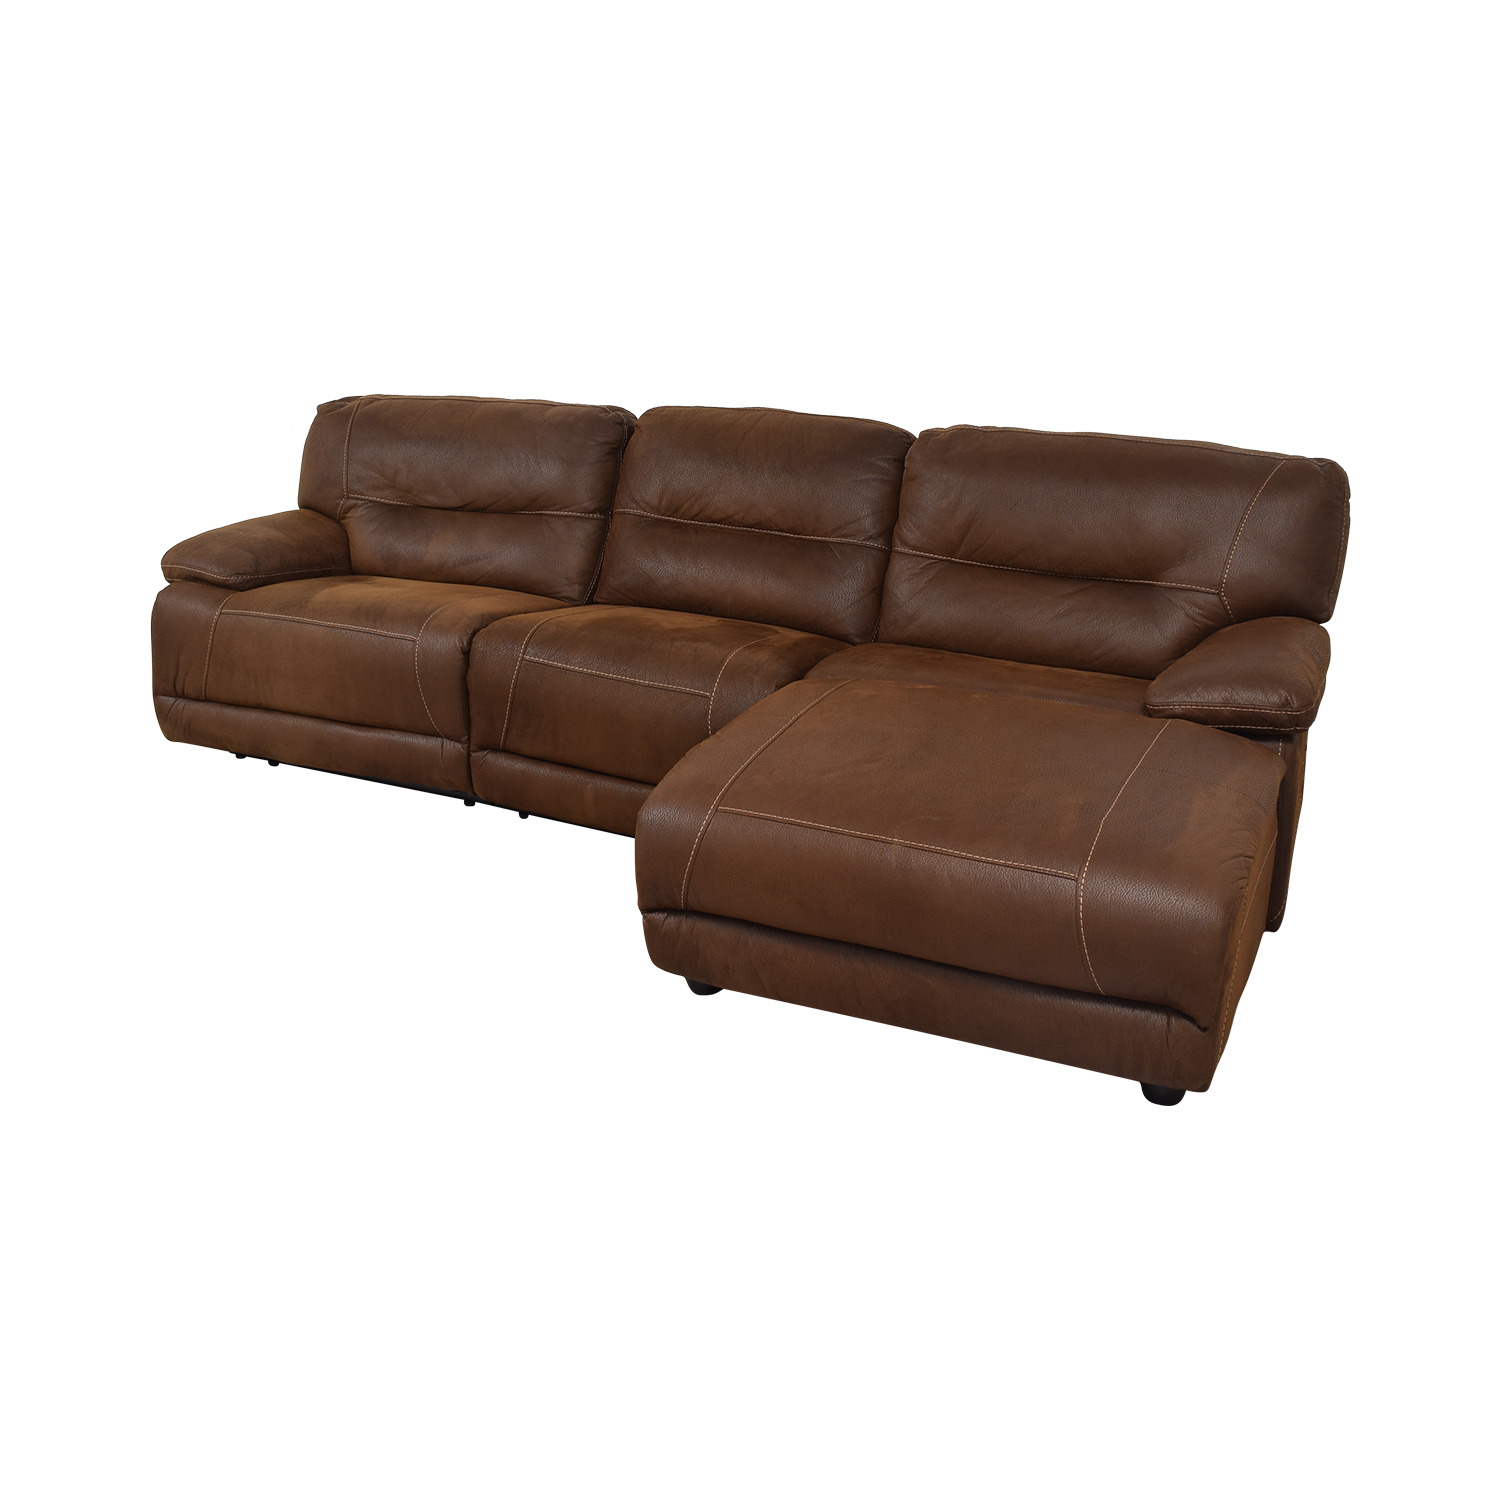 Bob's Discount Furniture Bob's Discount Furniture Brown Tufted Chaise Sectional Recliner nyc